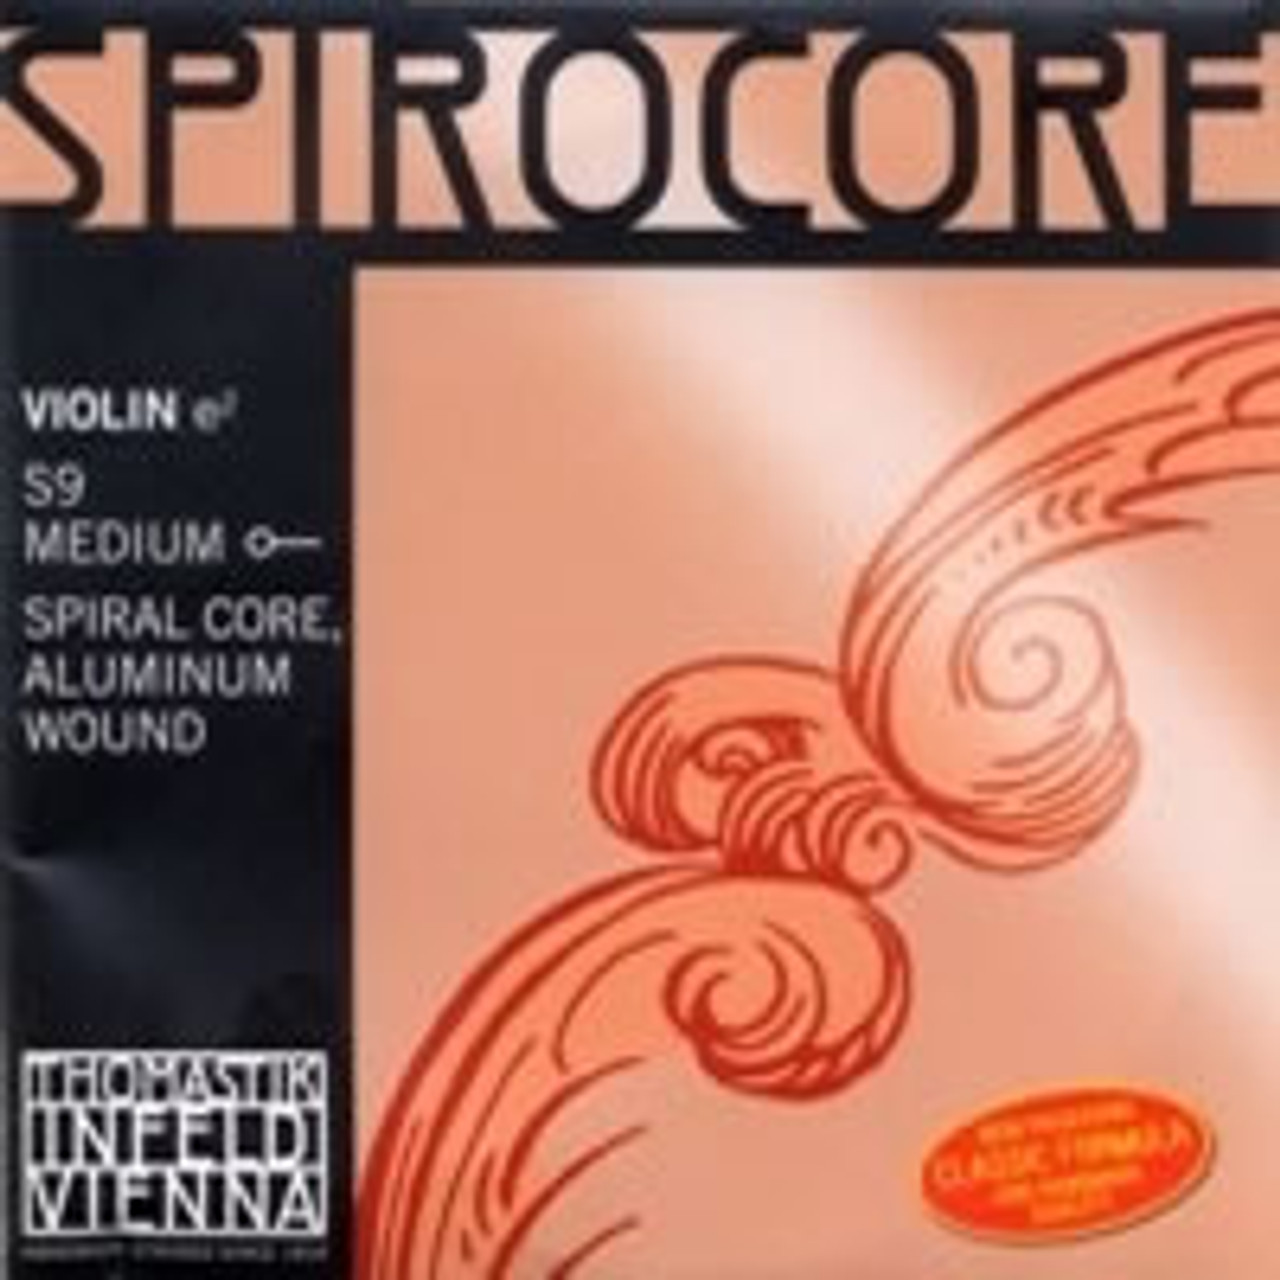 Spirocore Single Violin E String